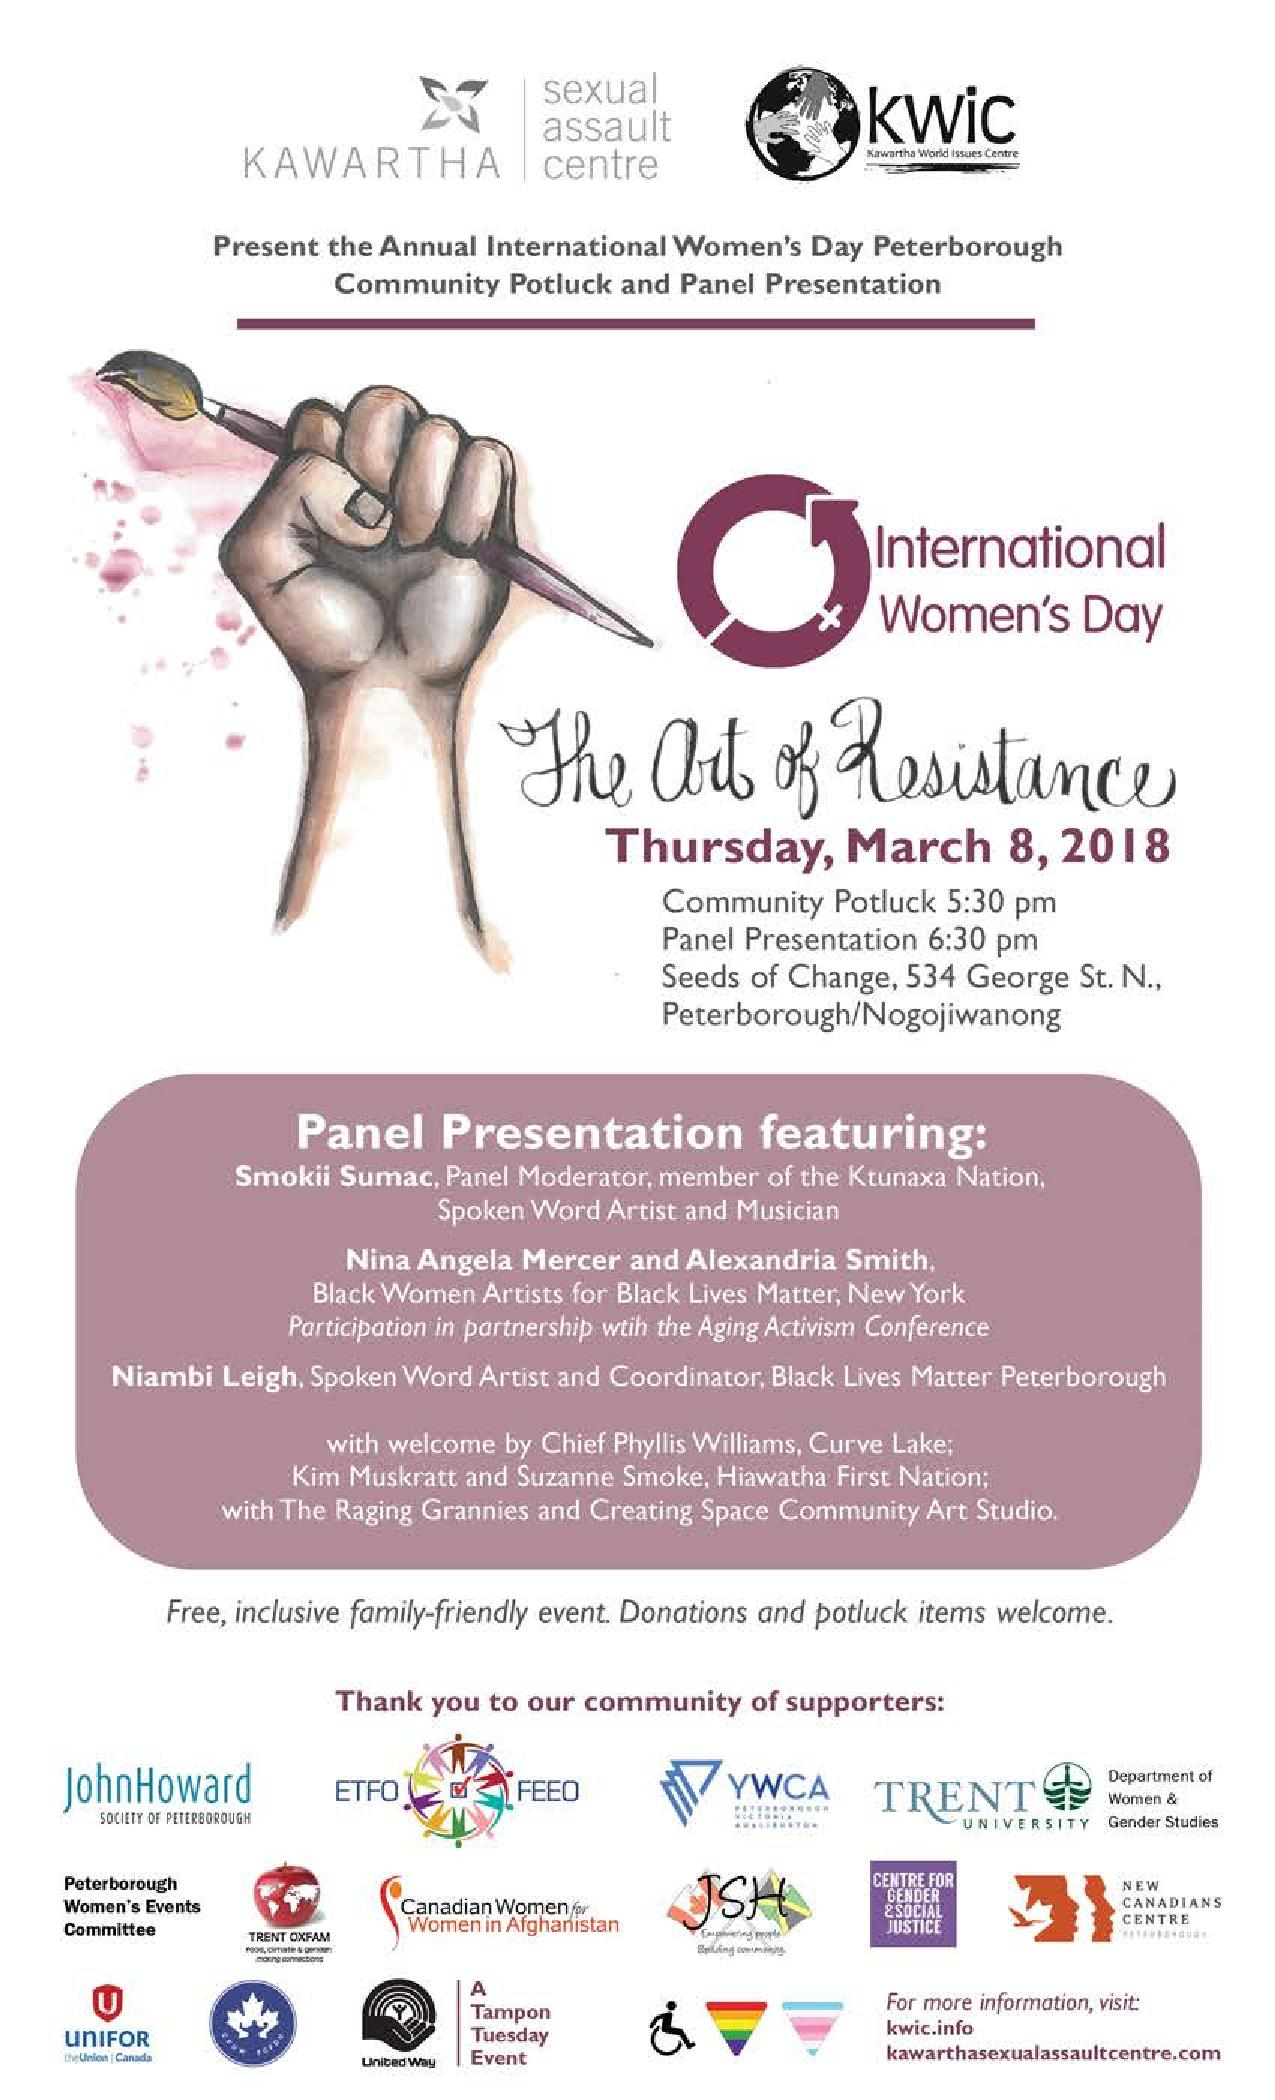 International Women's Day Ptbo